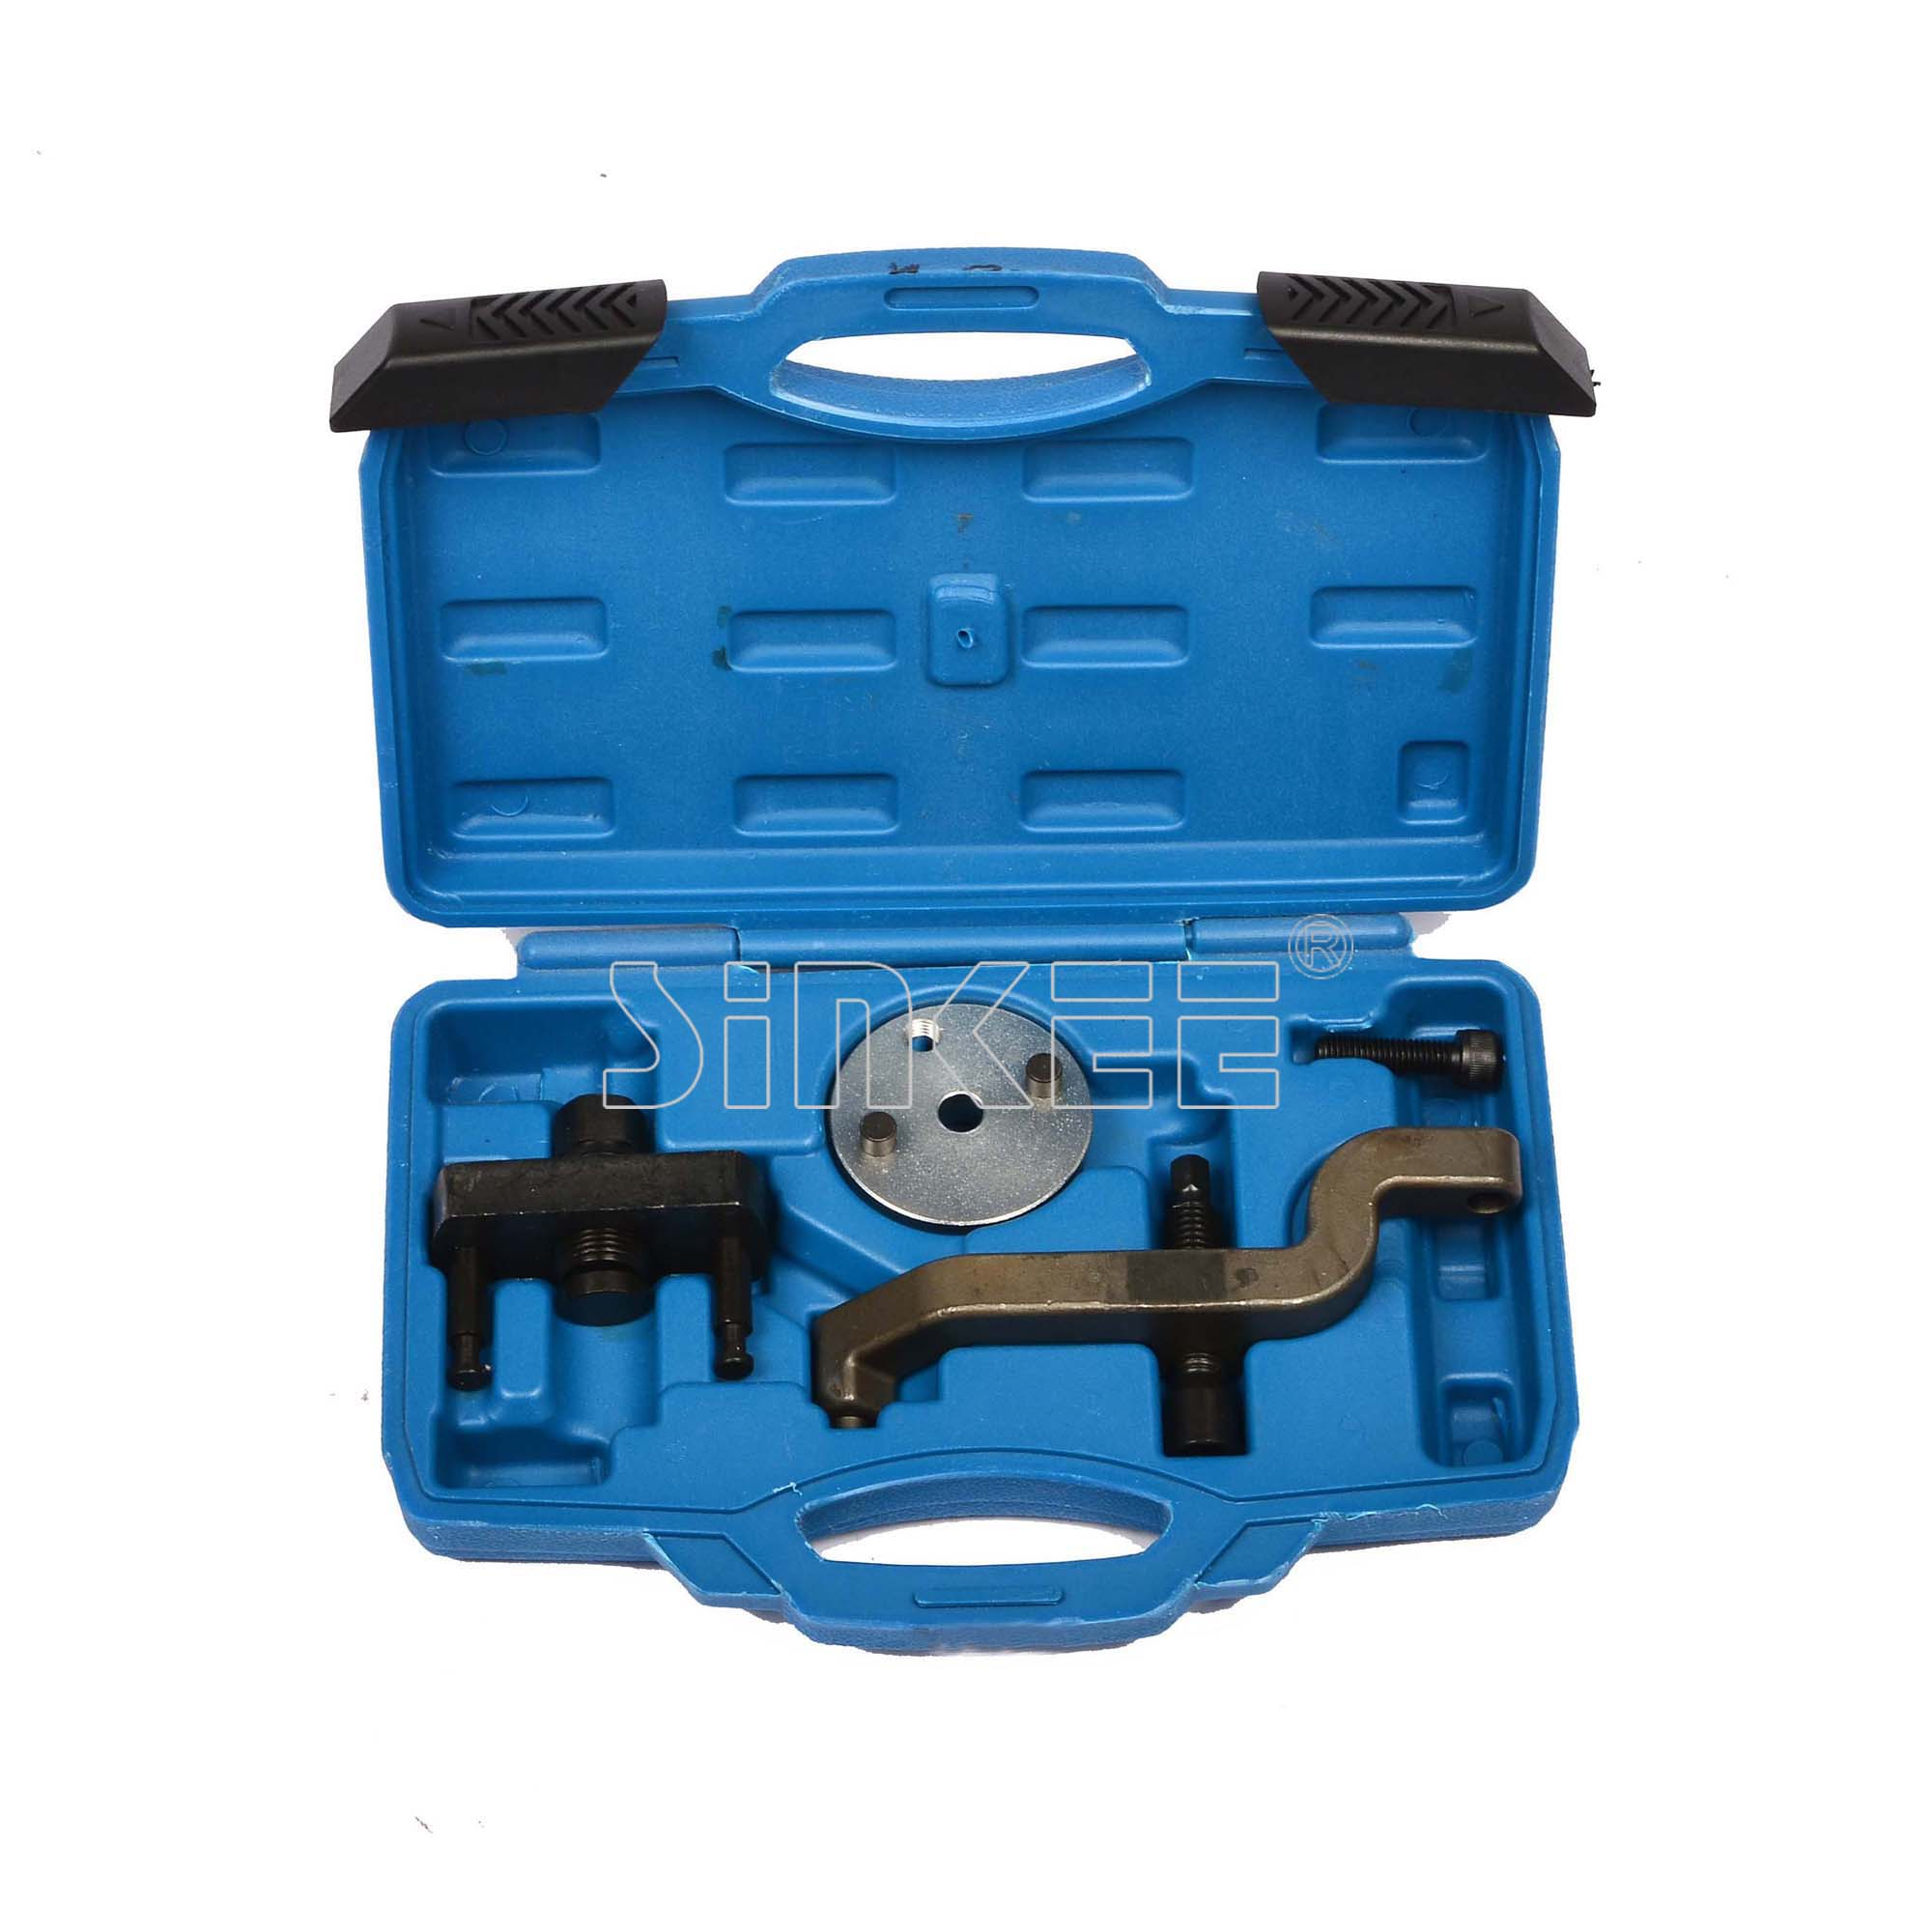 Engine Water Pump Removal Tool Set For VW 2.5 TDI T5 codes: AXD AXE BAC balanced cheap turbos kp39 bv39 54399880006 543998800011 54399880009 for vw t5 transporter 1 9 tdi engine axb axc